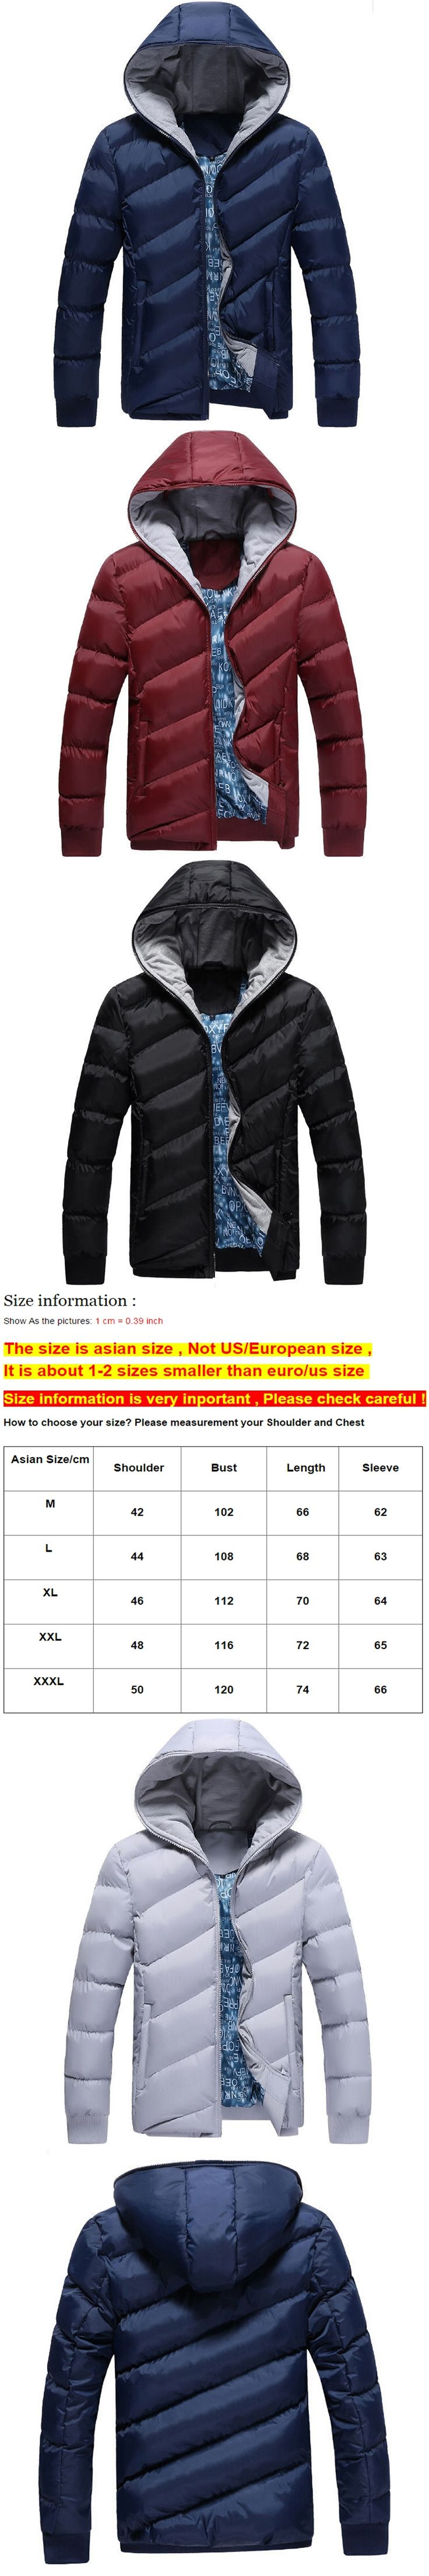 Winter Jacket Men Hooded Fashion Thick Warm Coat Mens Windbreaker Outwear Parkas jaqueta masculina male casaco parka Clothing